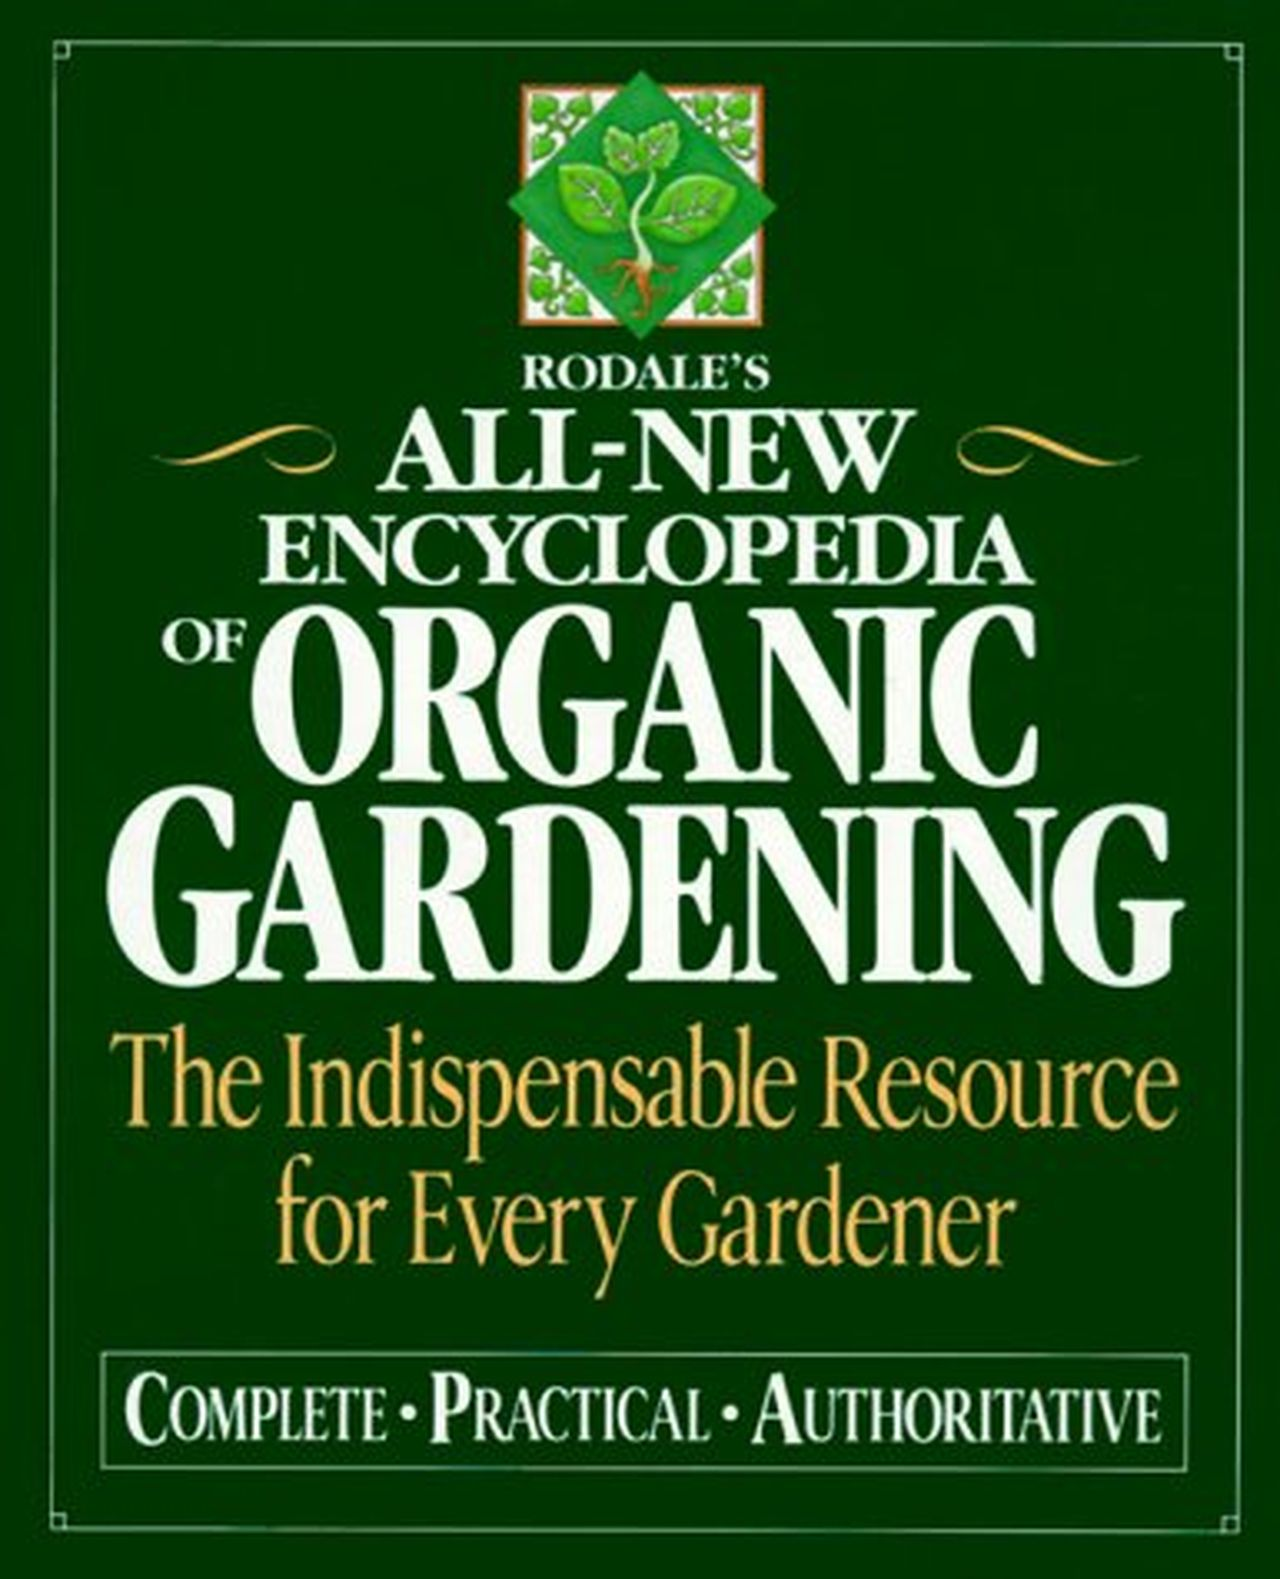 Rodale's Ultimate Encyclopedia of Organic Gardening by Deborah L. Martin , Fern Marshall Bradley, Barbara W. Ellis, and Ellen Phillips